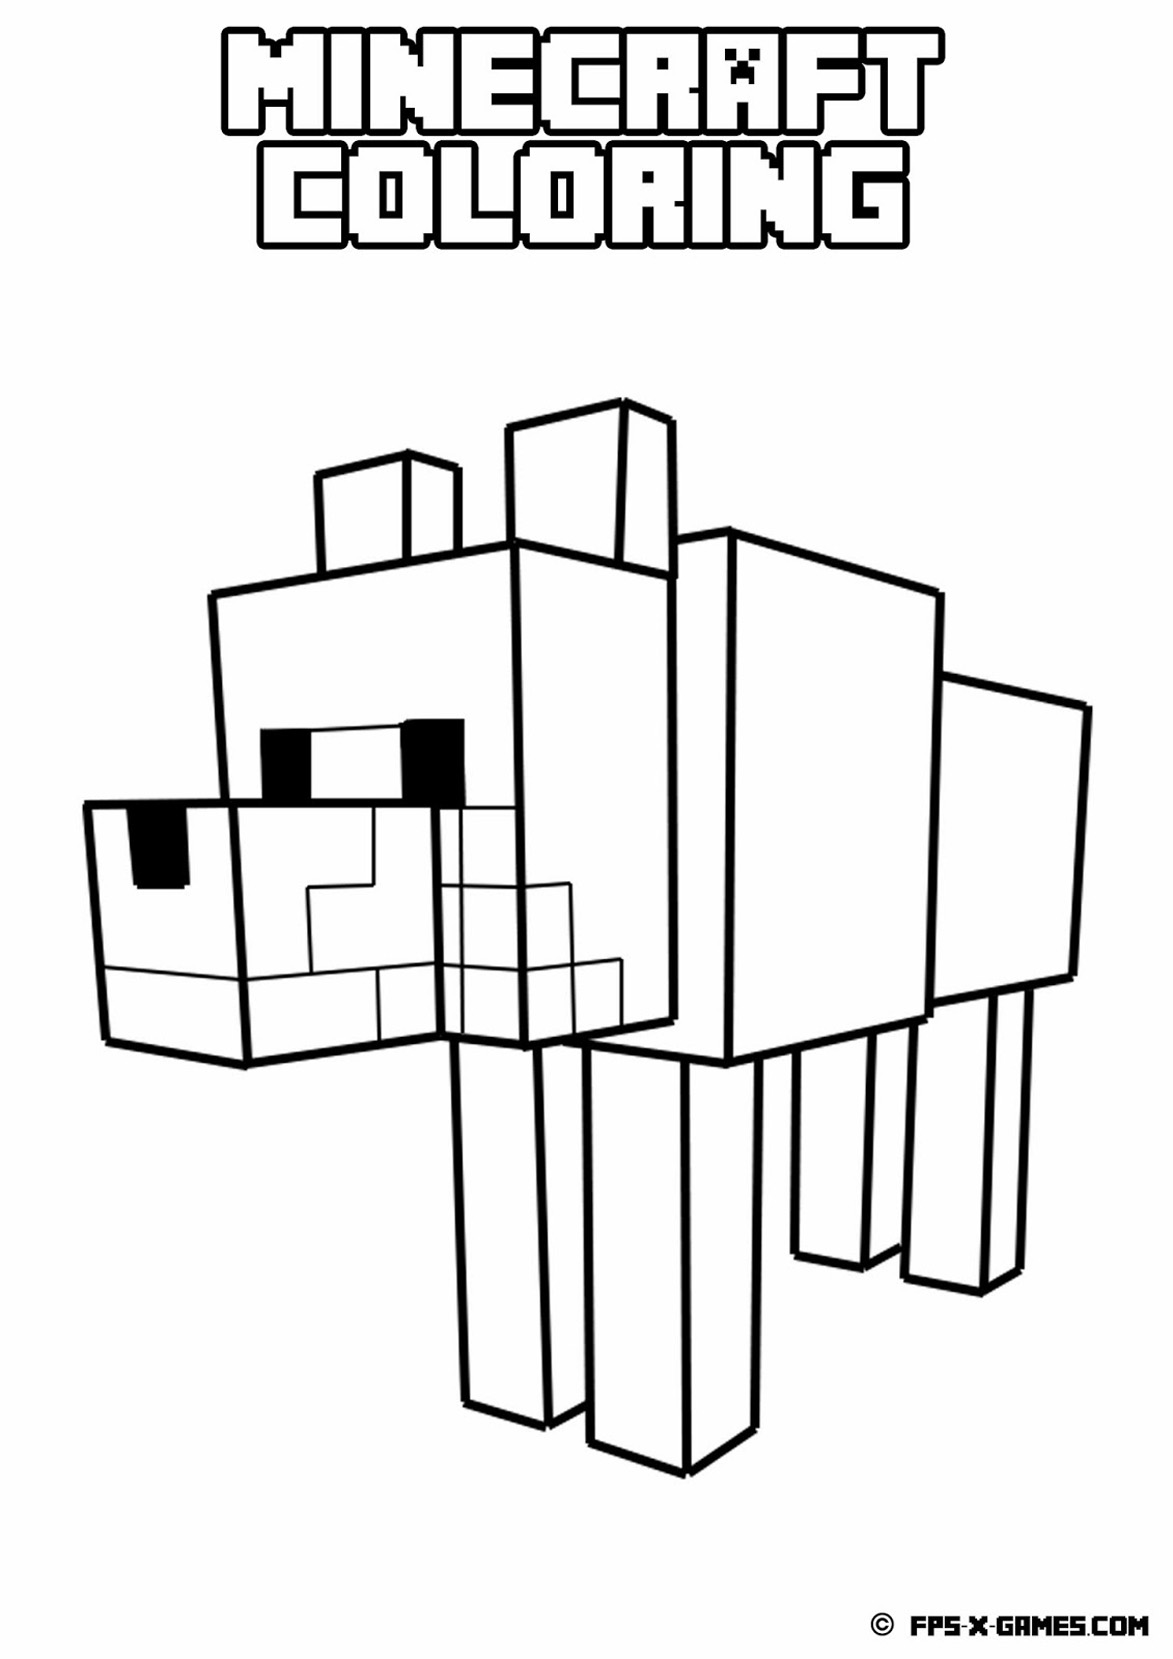 Coloring Page Drawing Inspired What Is This Strange Animal Drawn In Minecraft Style